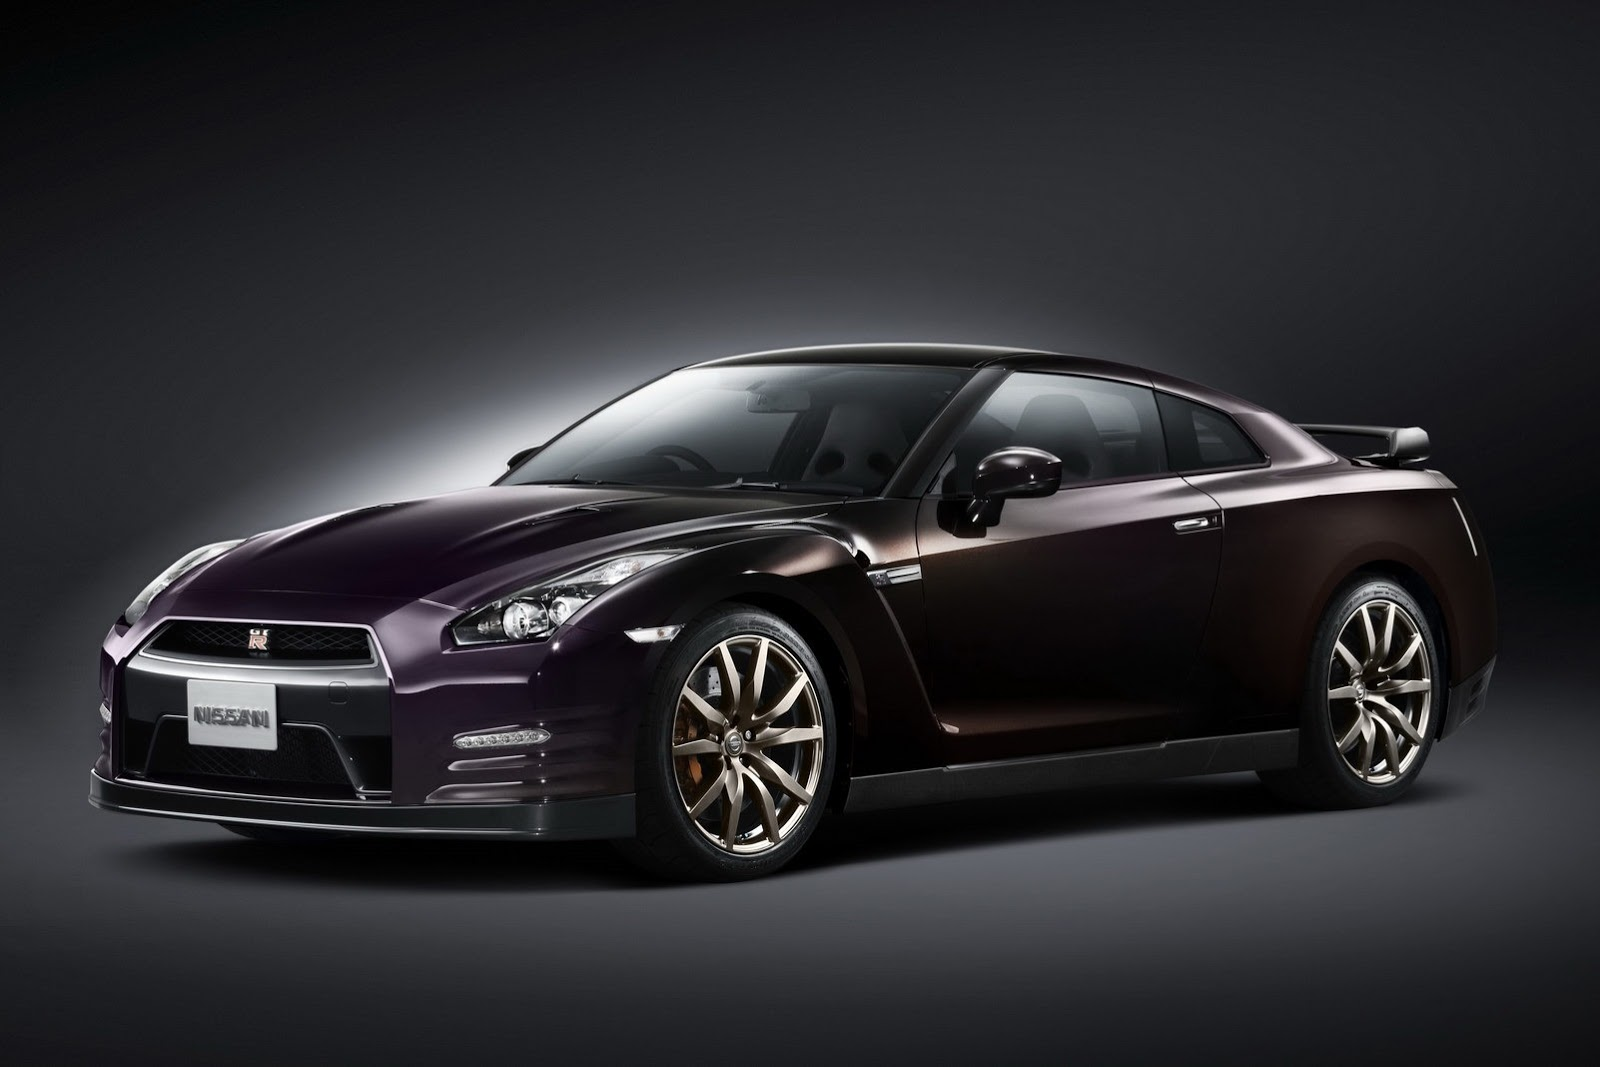 nissan gtr midnight purple autonetmagz review mobil dan motor baru indonesia. Black Bedroom Furniture Sets. Home Design Ideas